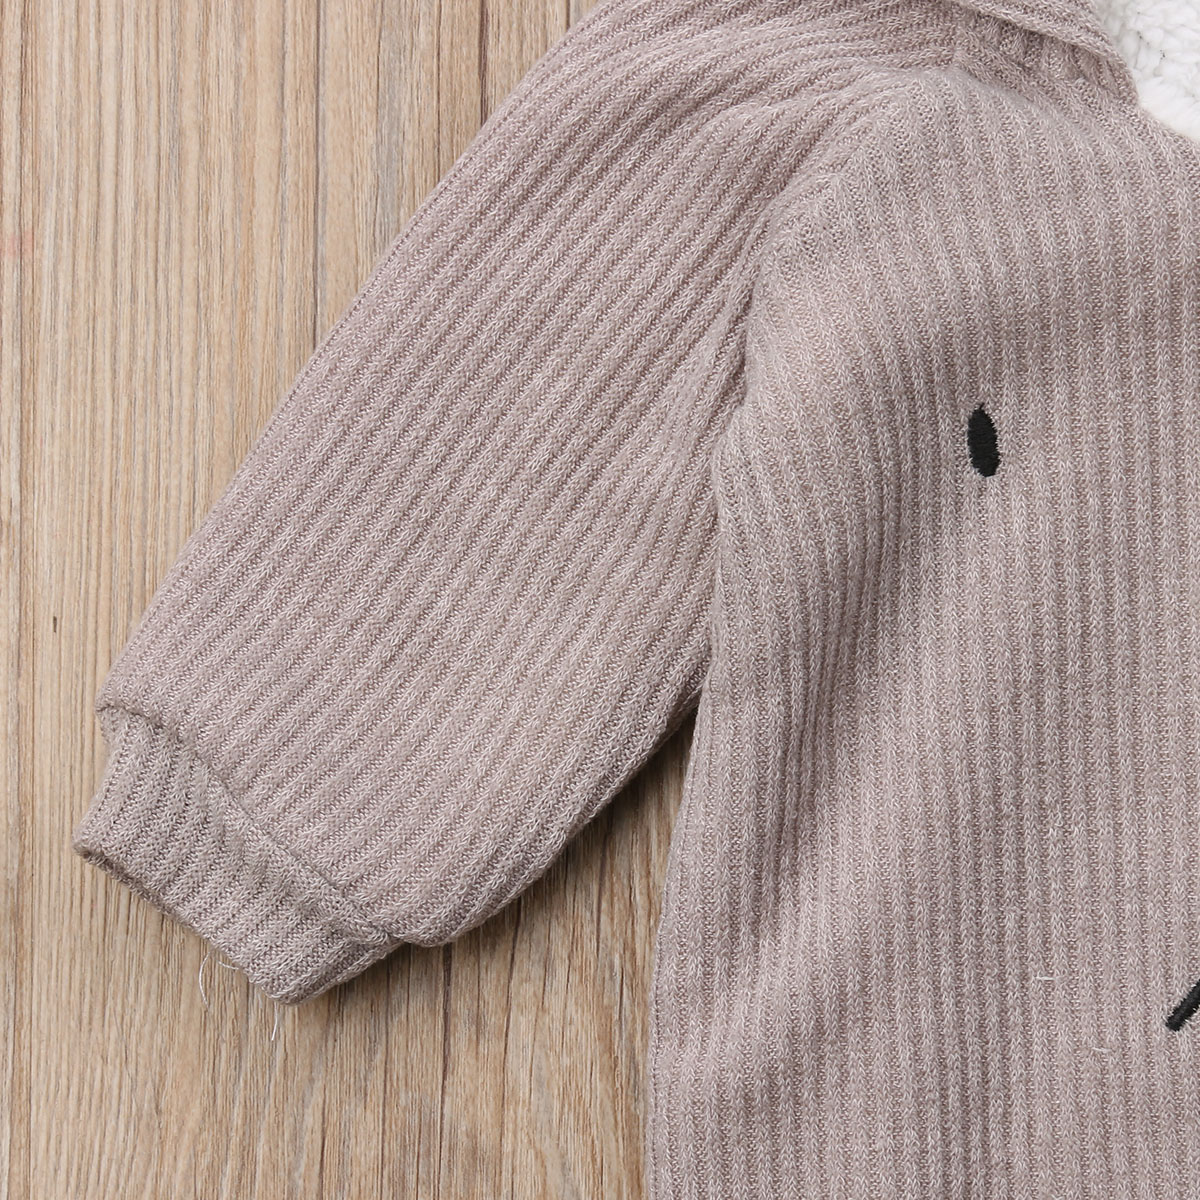 2609d98ff Pudcoco Cute Newborn Baby Boy Girl Autumn Winter Clothes Long Sleeve Bunny  Ear Hooded Romper Jumpsuit Warm Outfits Baby Clothing